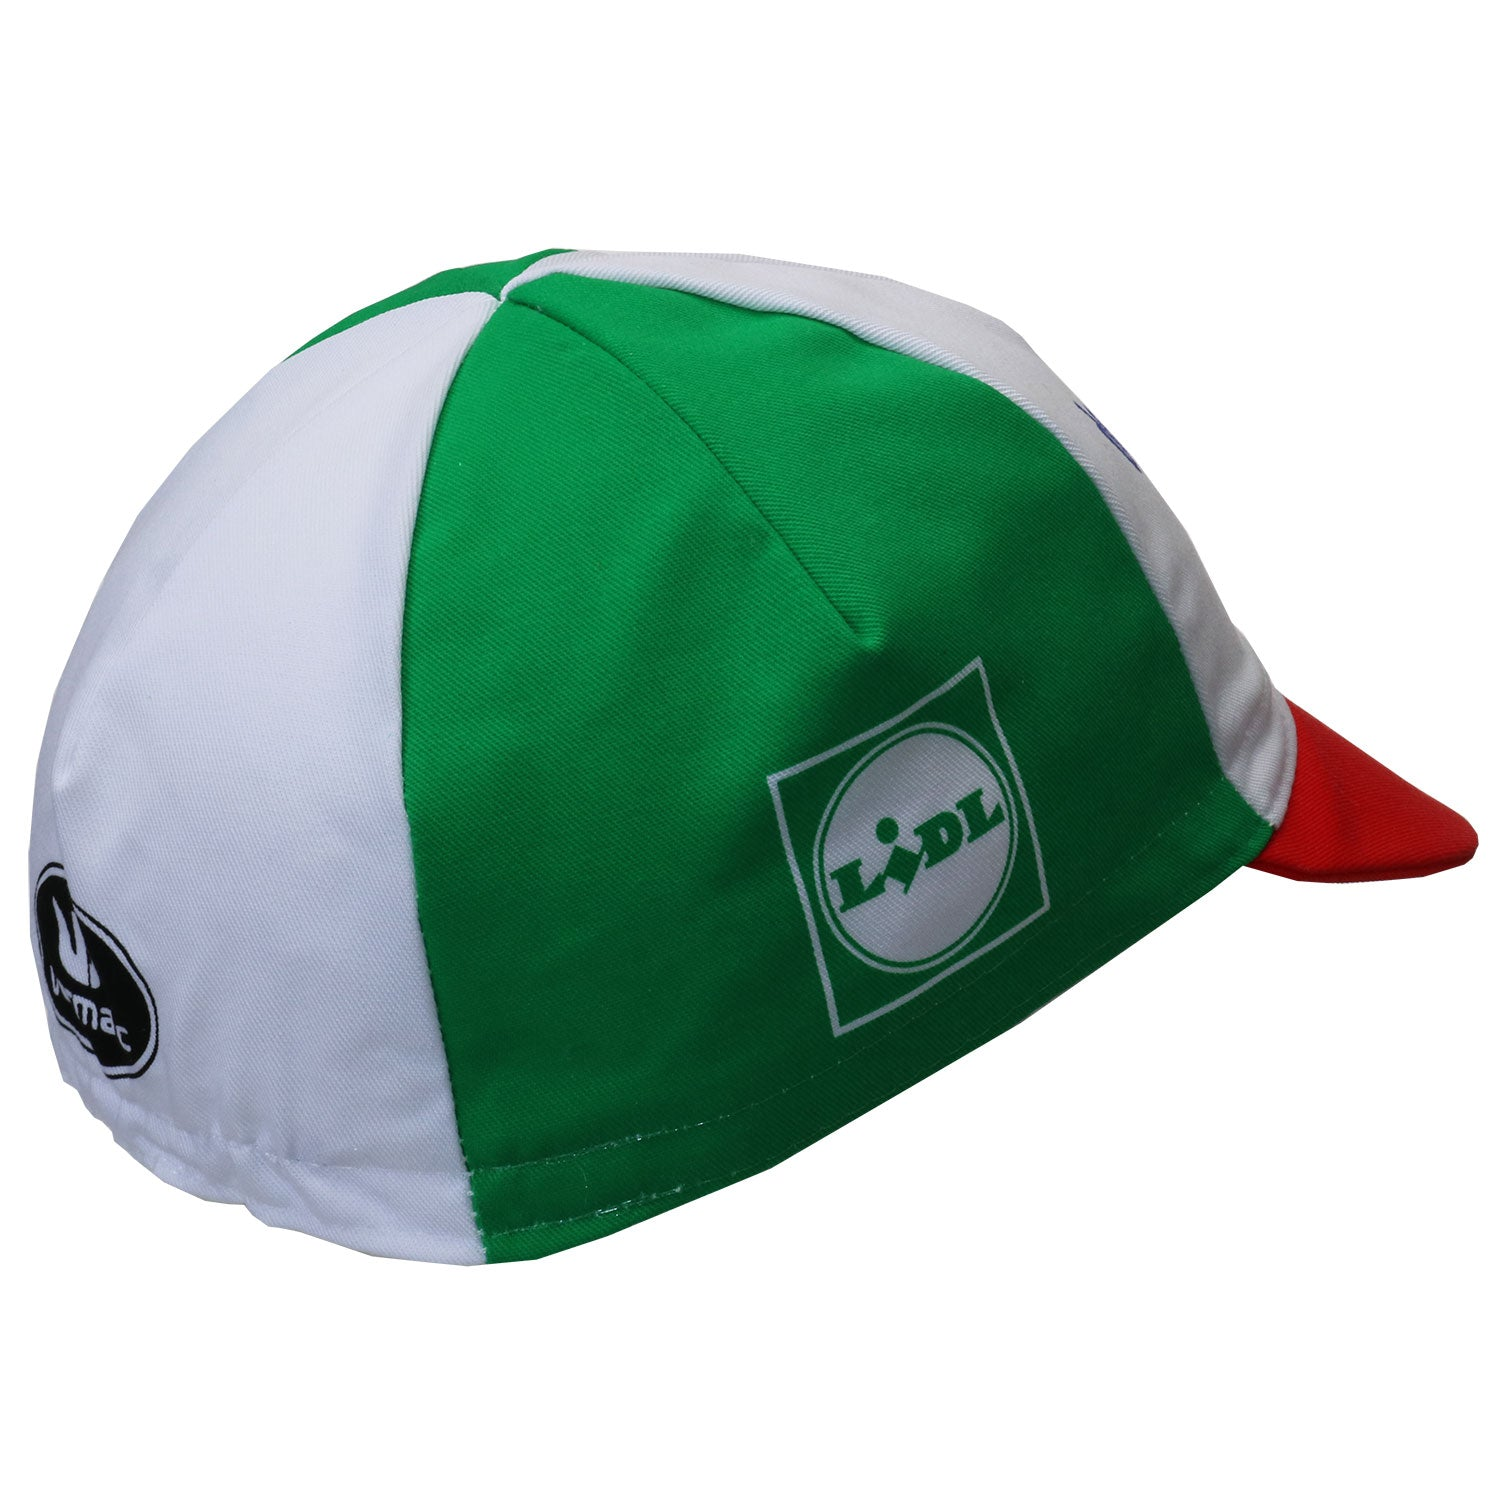 New Sportful Italian National Cycling Team Cycling cap Tricolour 4 Colnago